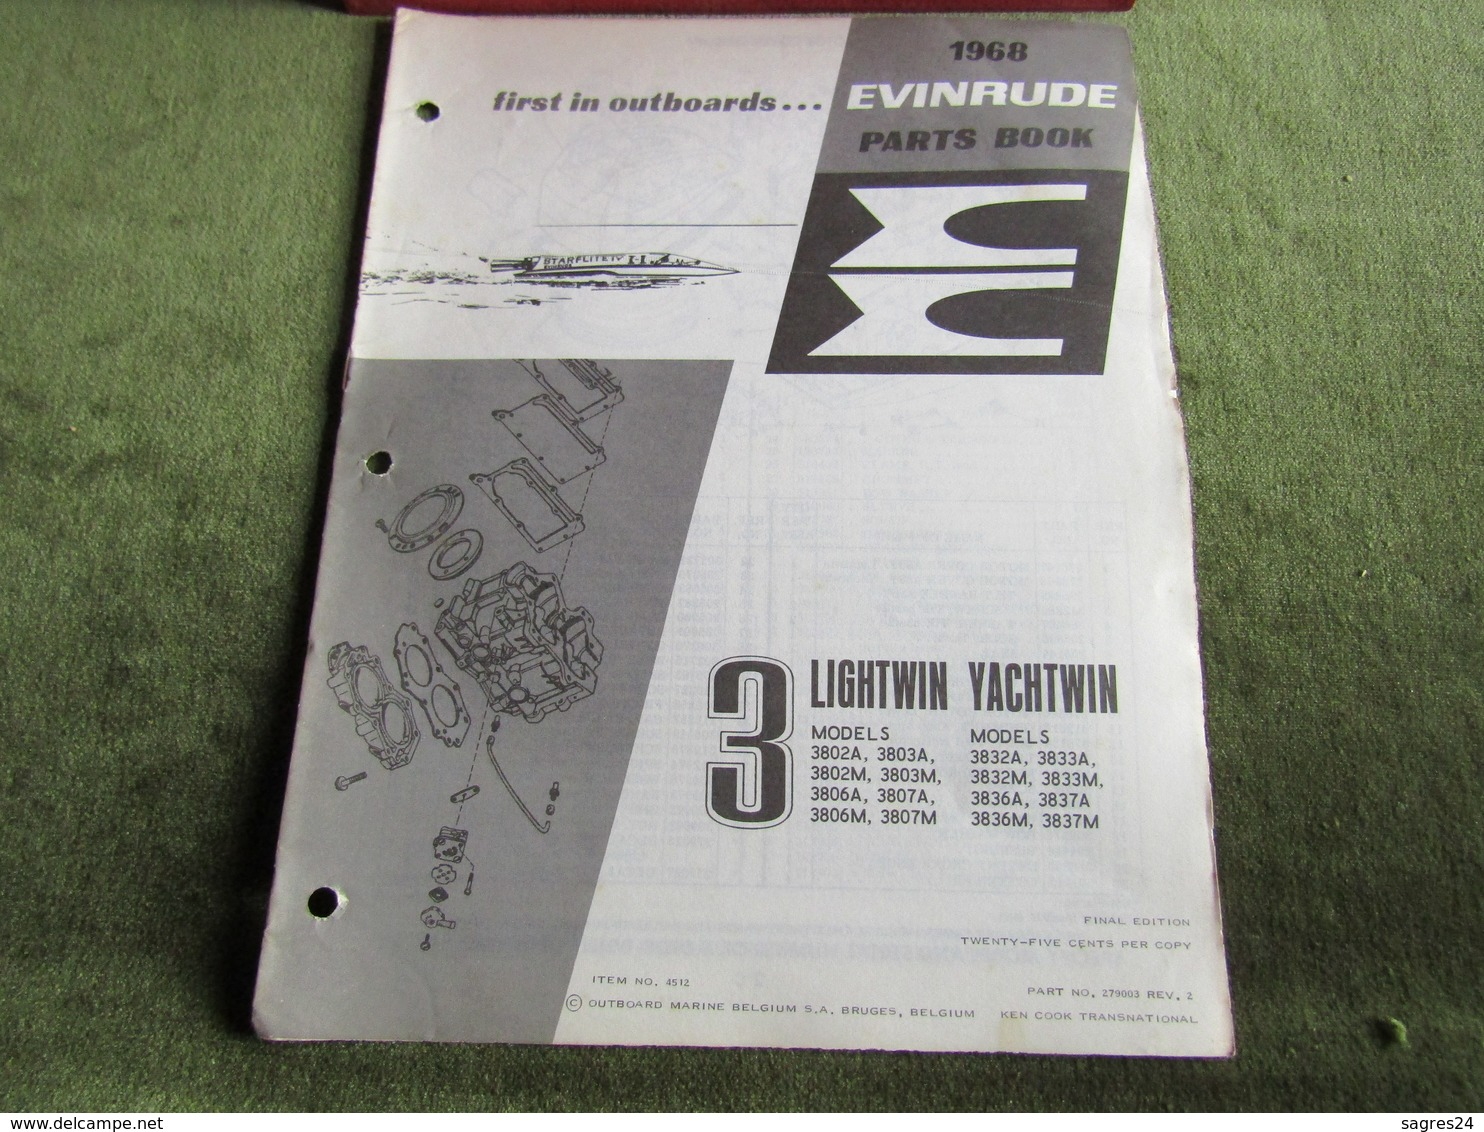 Evinrude Outboard 3 Lightwin Yachtwin Parts Book 1968 - Boats